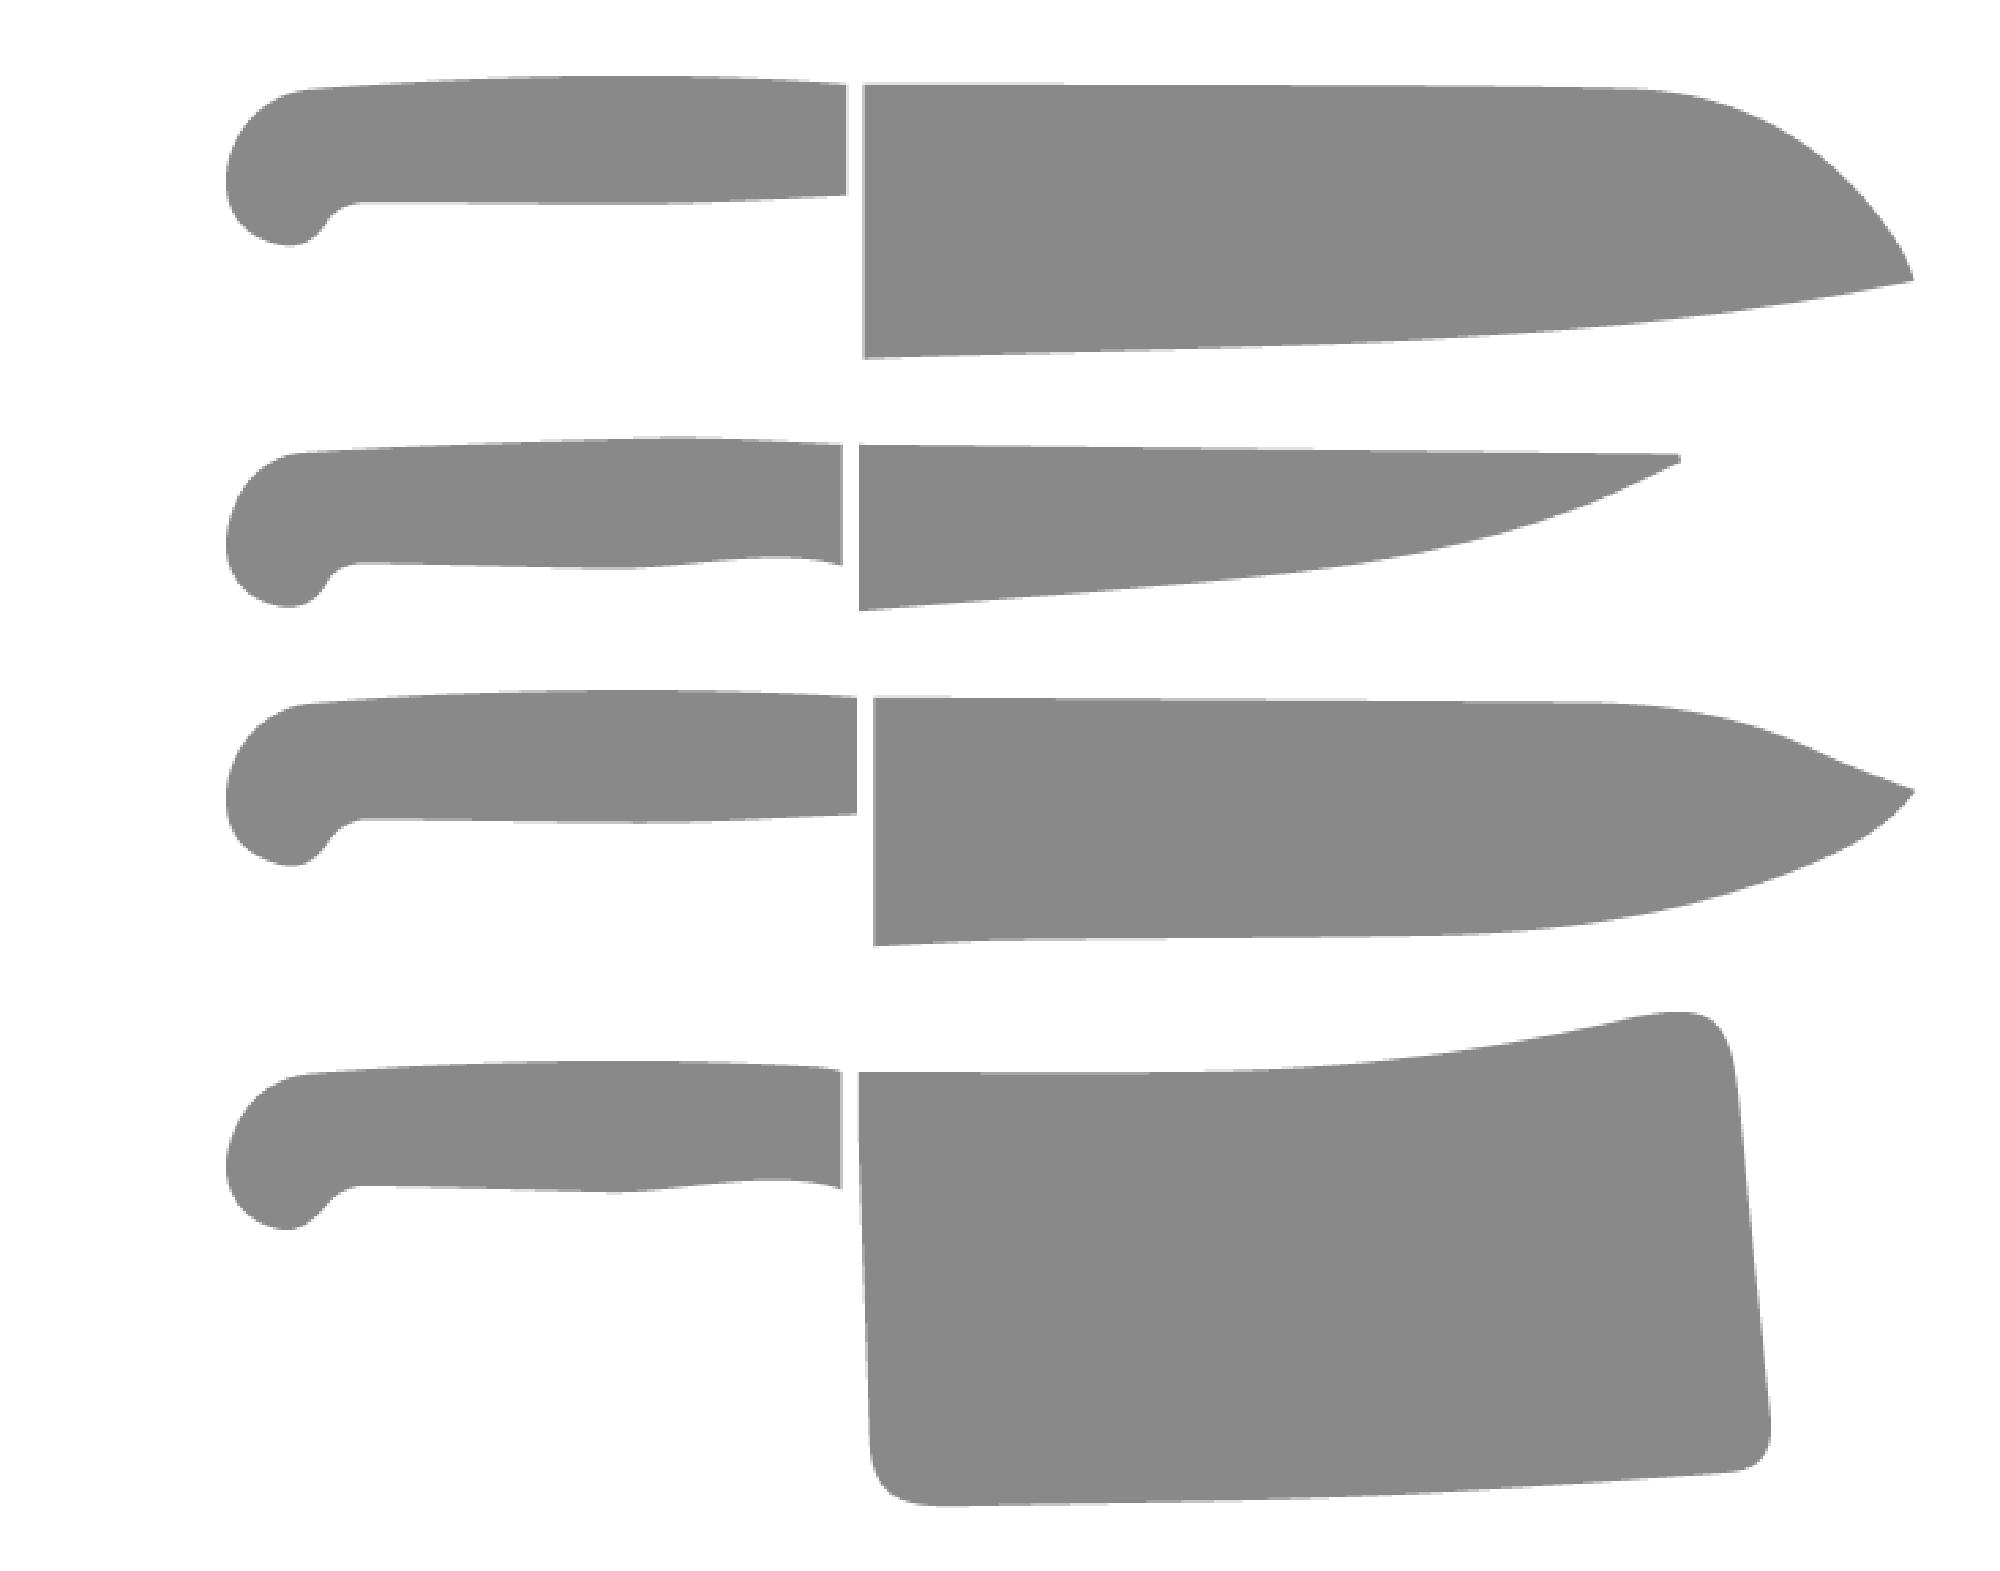 ・Stainless kitchen knife<br /> ・ Kitchen knife made of iron and steel<br /> ・Titanium kitchen knife<br /> ・Broad-blade kitchen knife<br /> ・Slender kitchen knife for sashimi cutting<br />